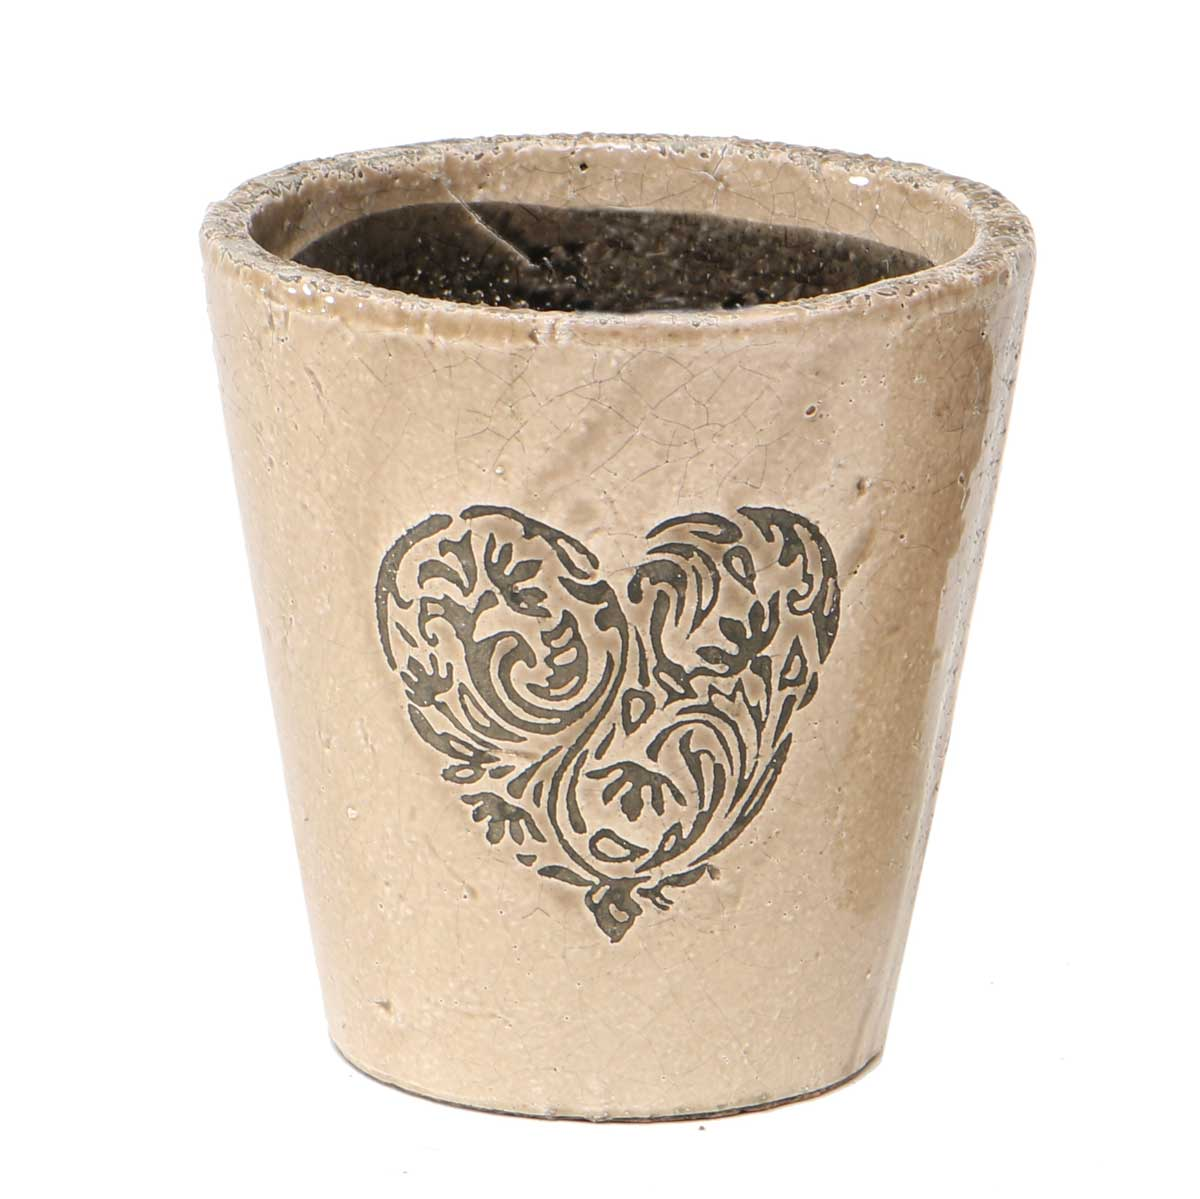 "HEART SCROLL POT 4.5""X4.5"""